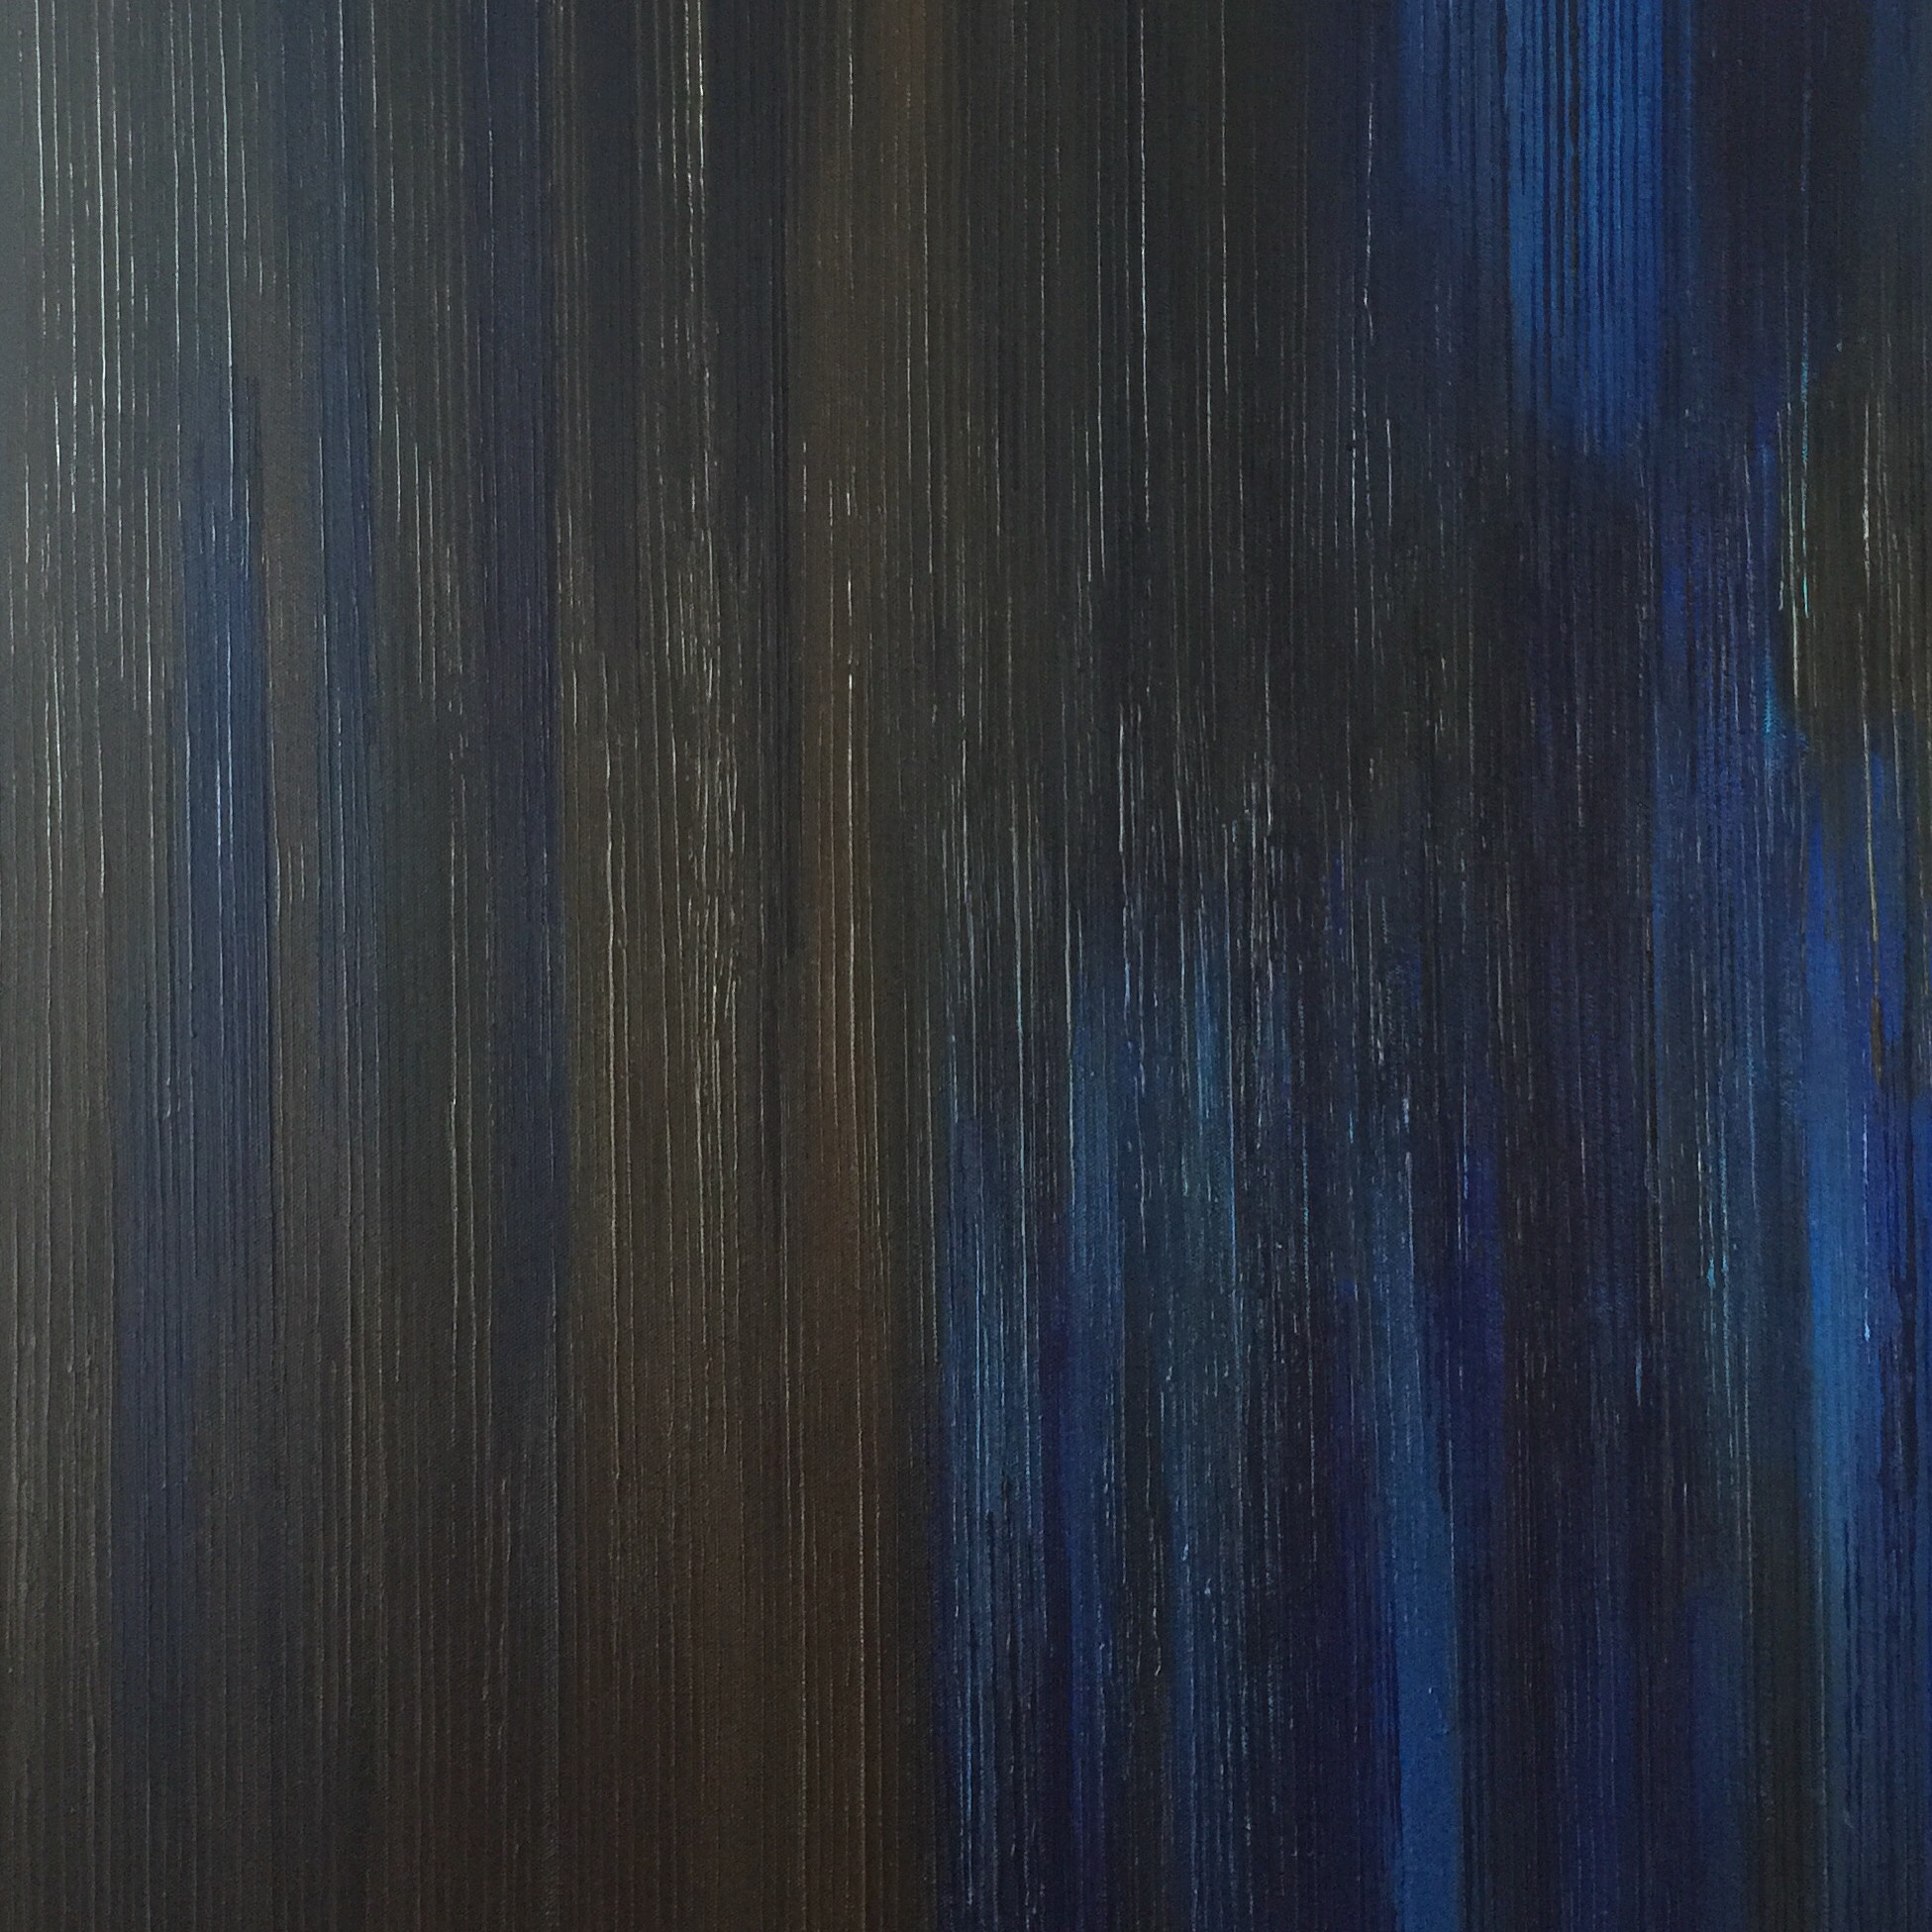 Emergence I - Blue/Brown - 2015